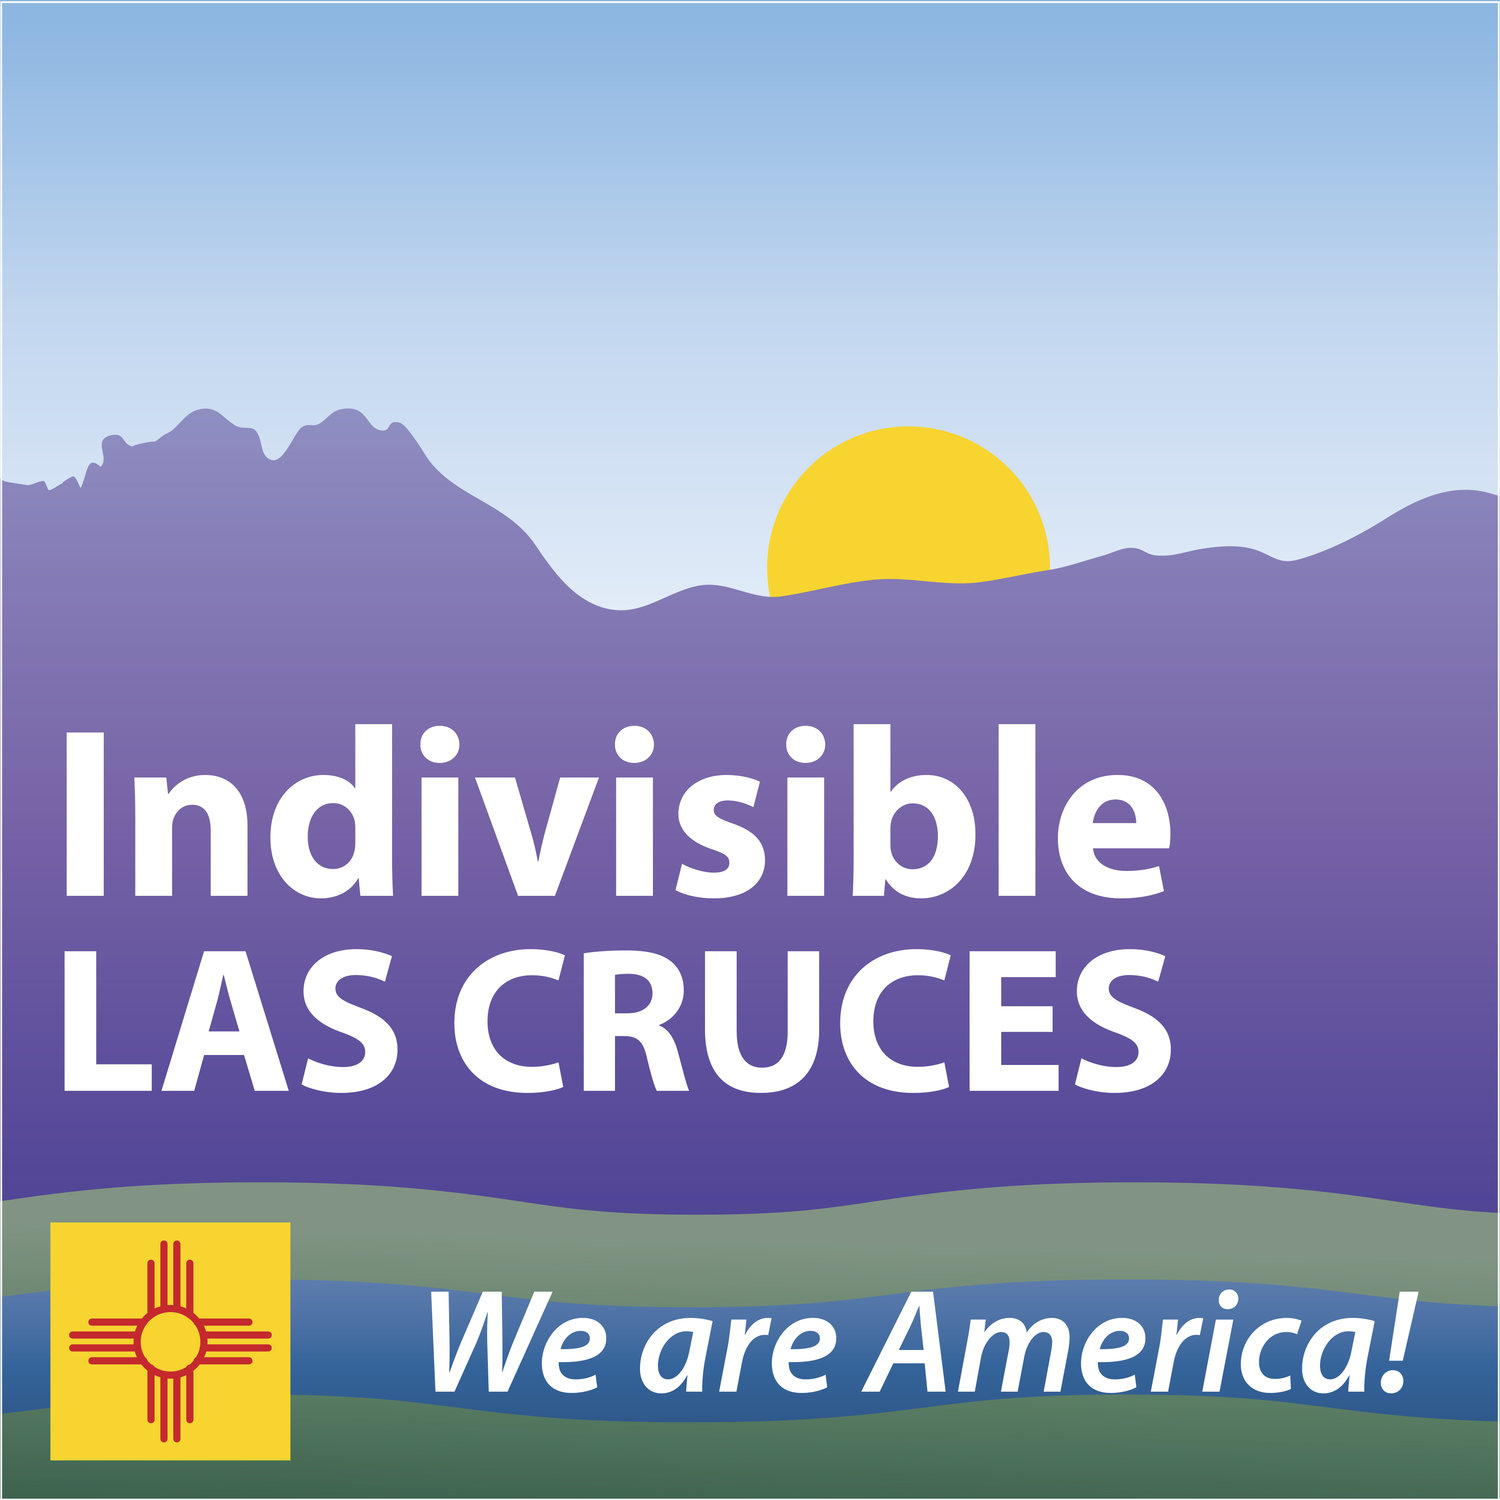 Indivisible LAS CRUCES